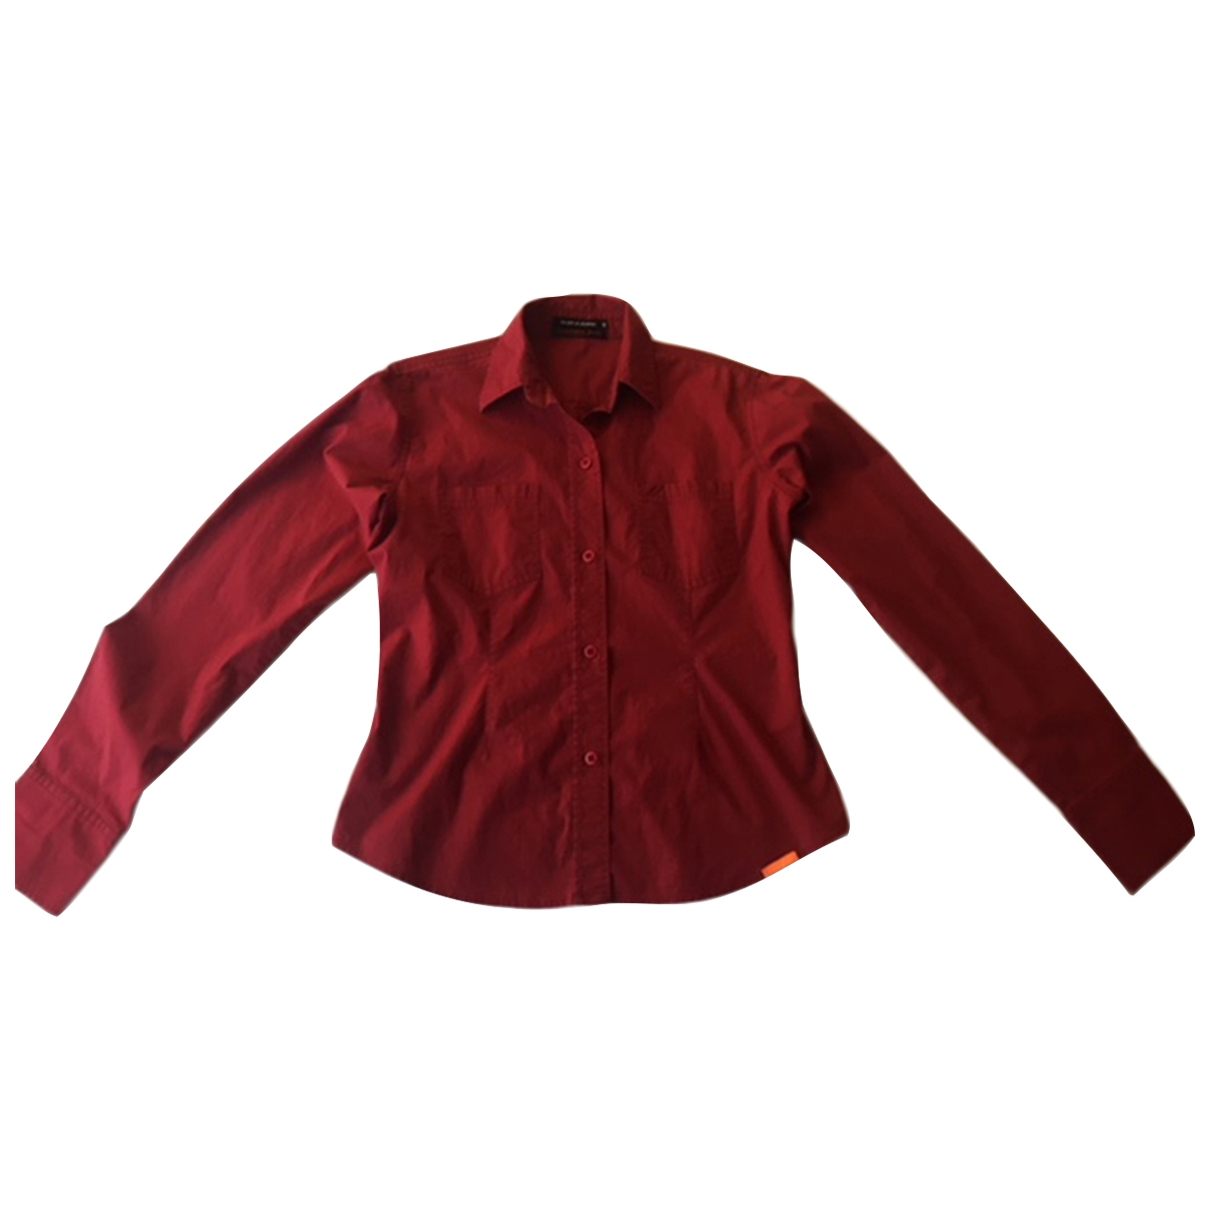 Dkny \N Red Cotton  top for Women 6 US